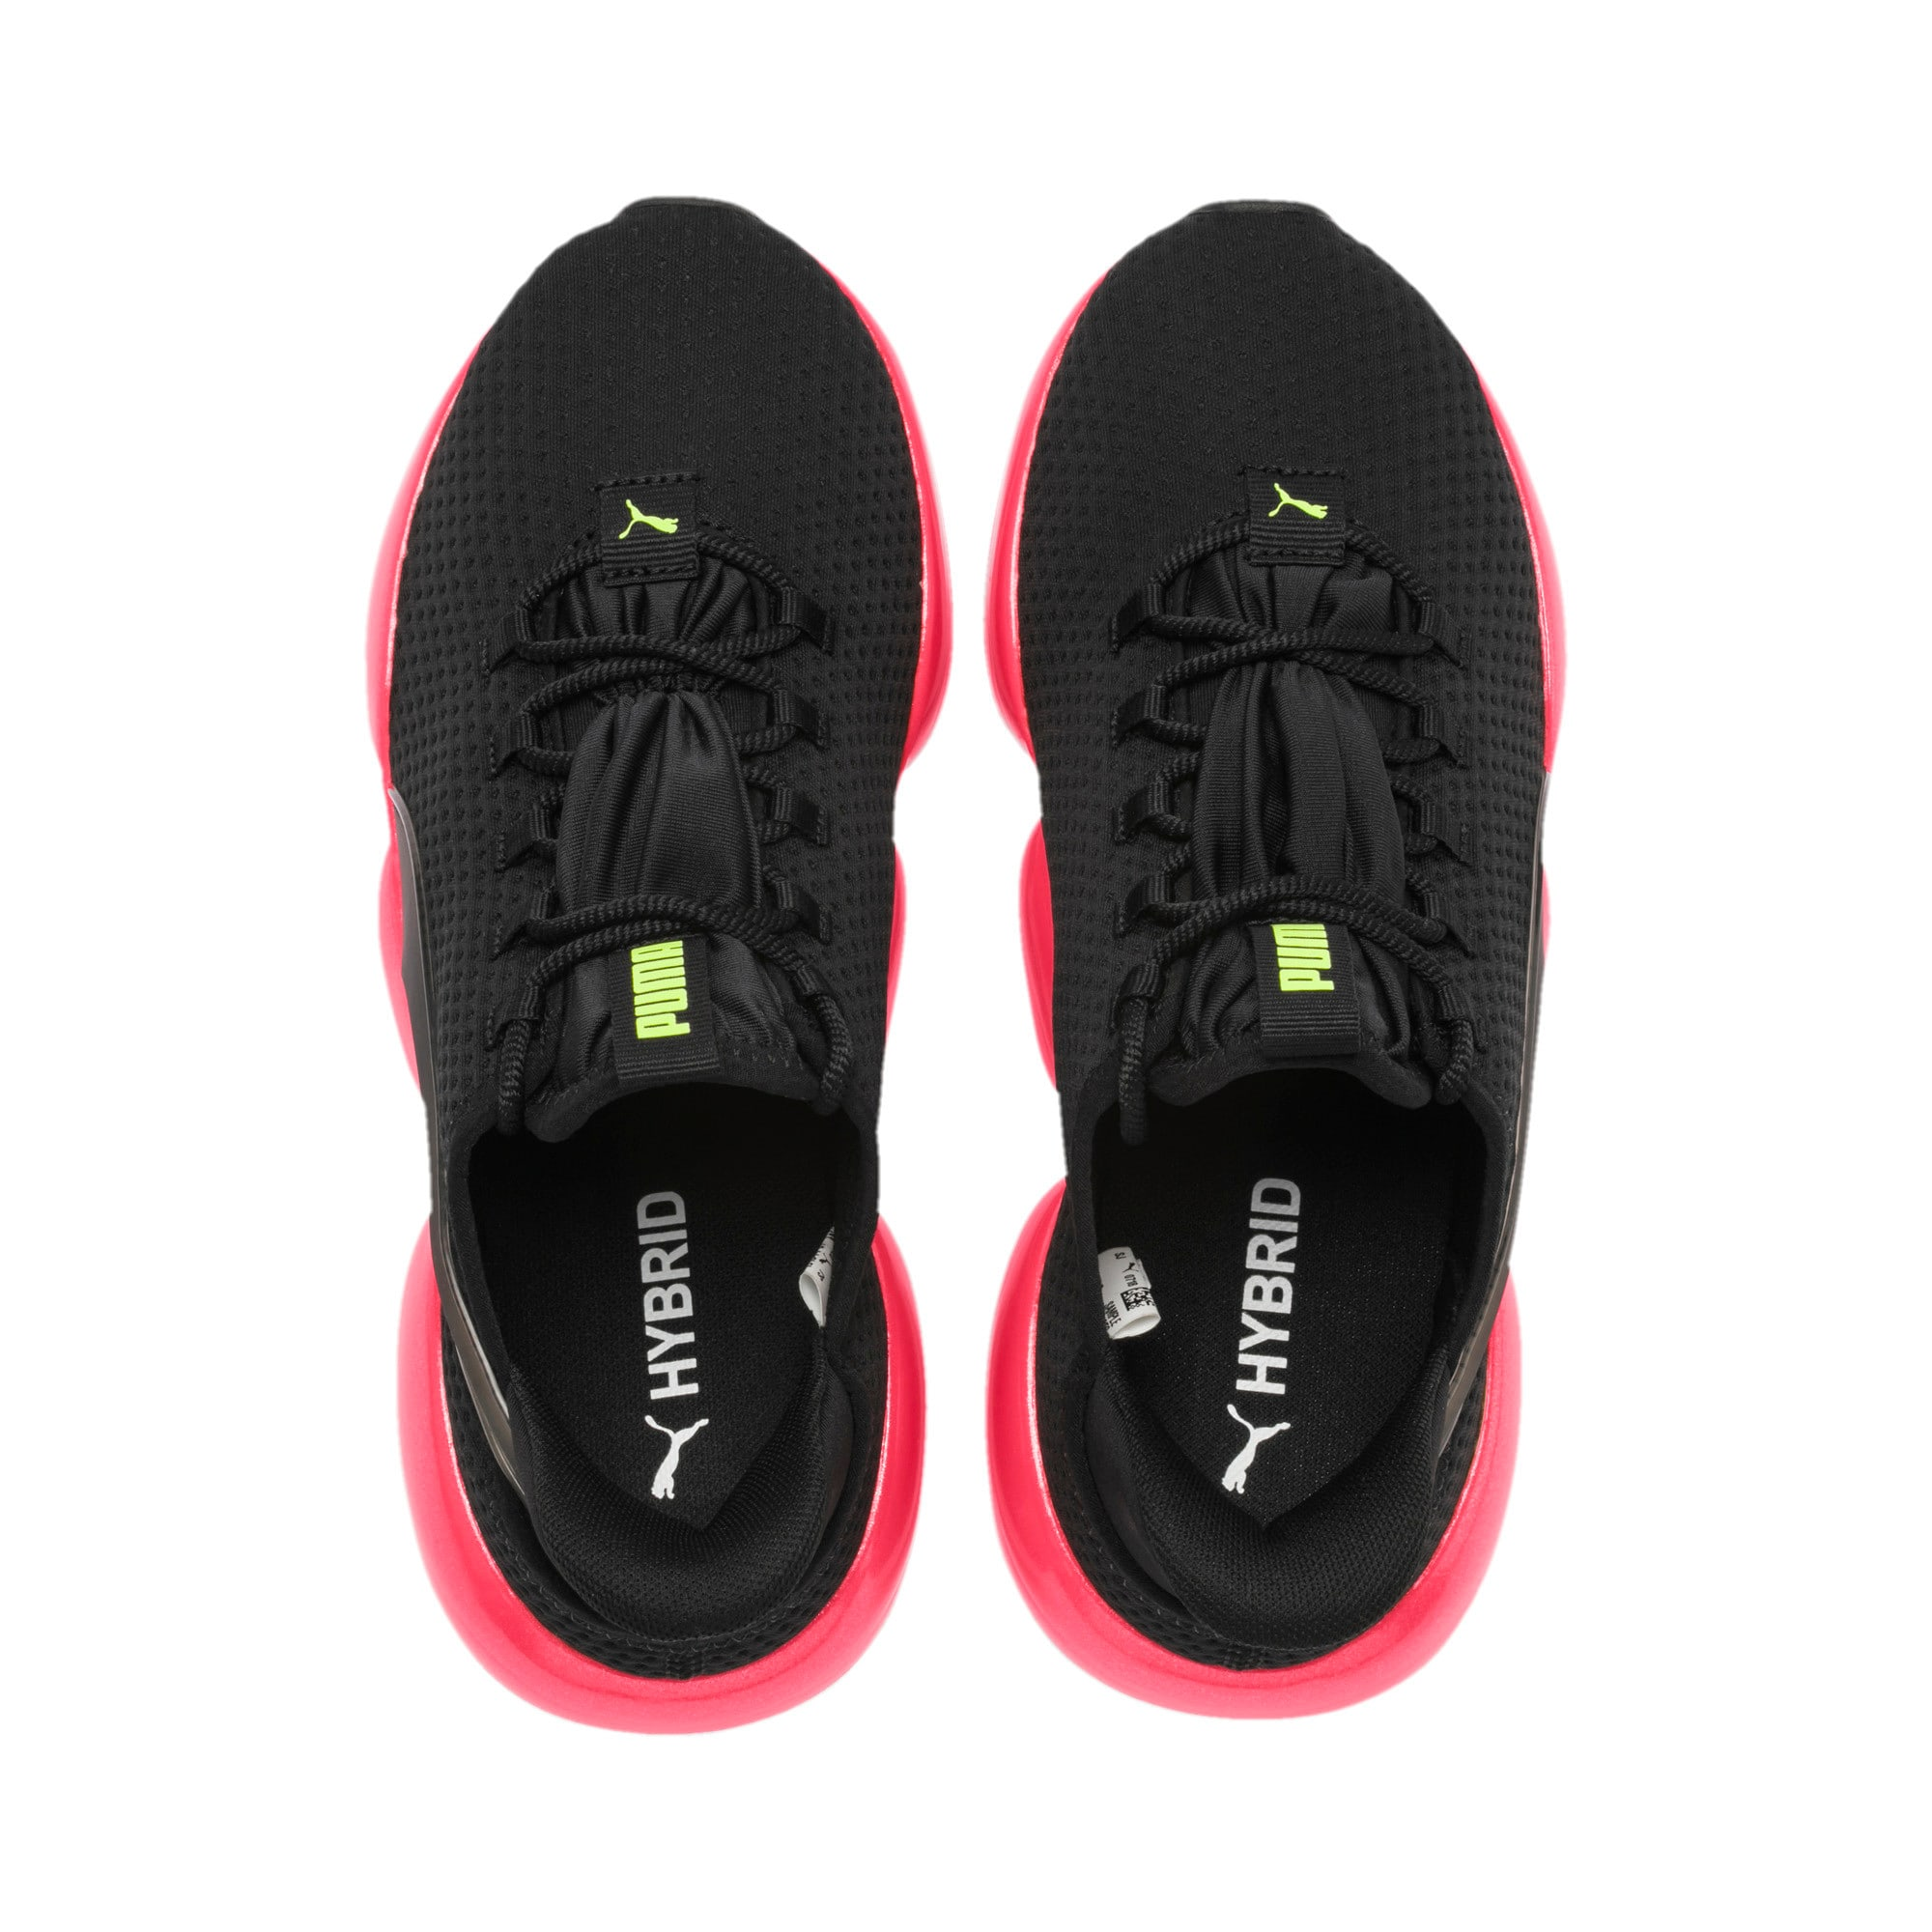 Thumbnail 7 of Mode XT Damen Trainingsschuhe, Puma Black-Pink Alert, medium